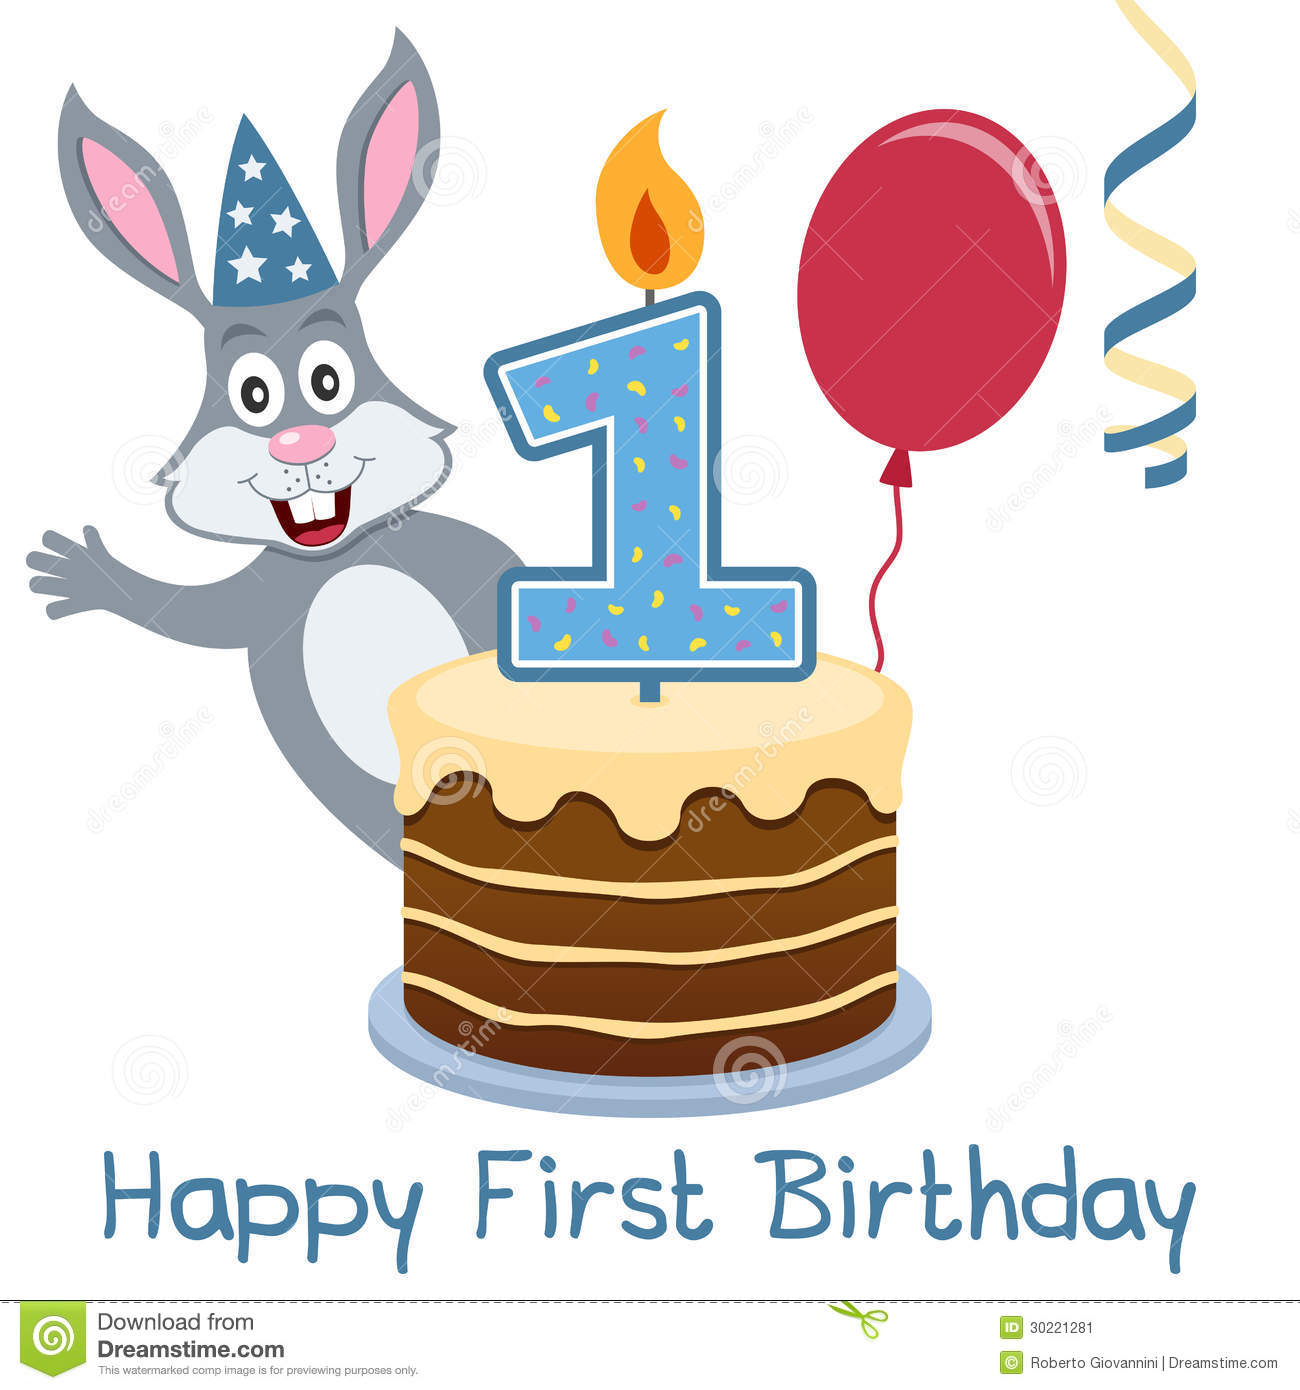 First birthday bunny rabbit stock vector illustration of first birthday bunny rabbit m4hsunfo